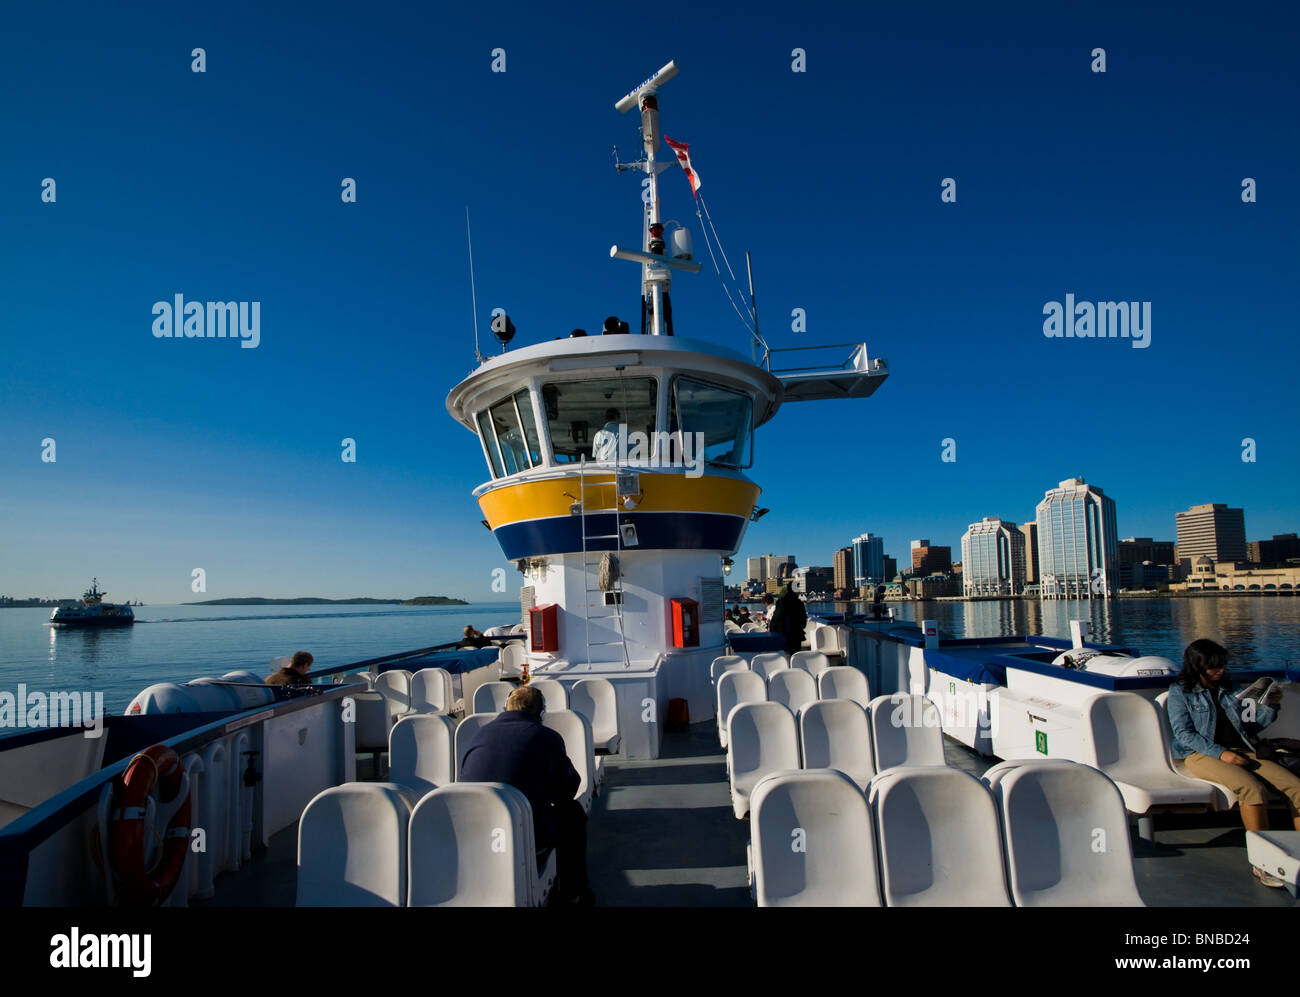 A ferry ride from Dartmouth to Halifax with Purdy's Wharf, the city skyline, and a ferry heading in the opposite - Stock Image